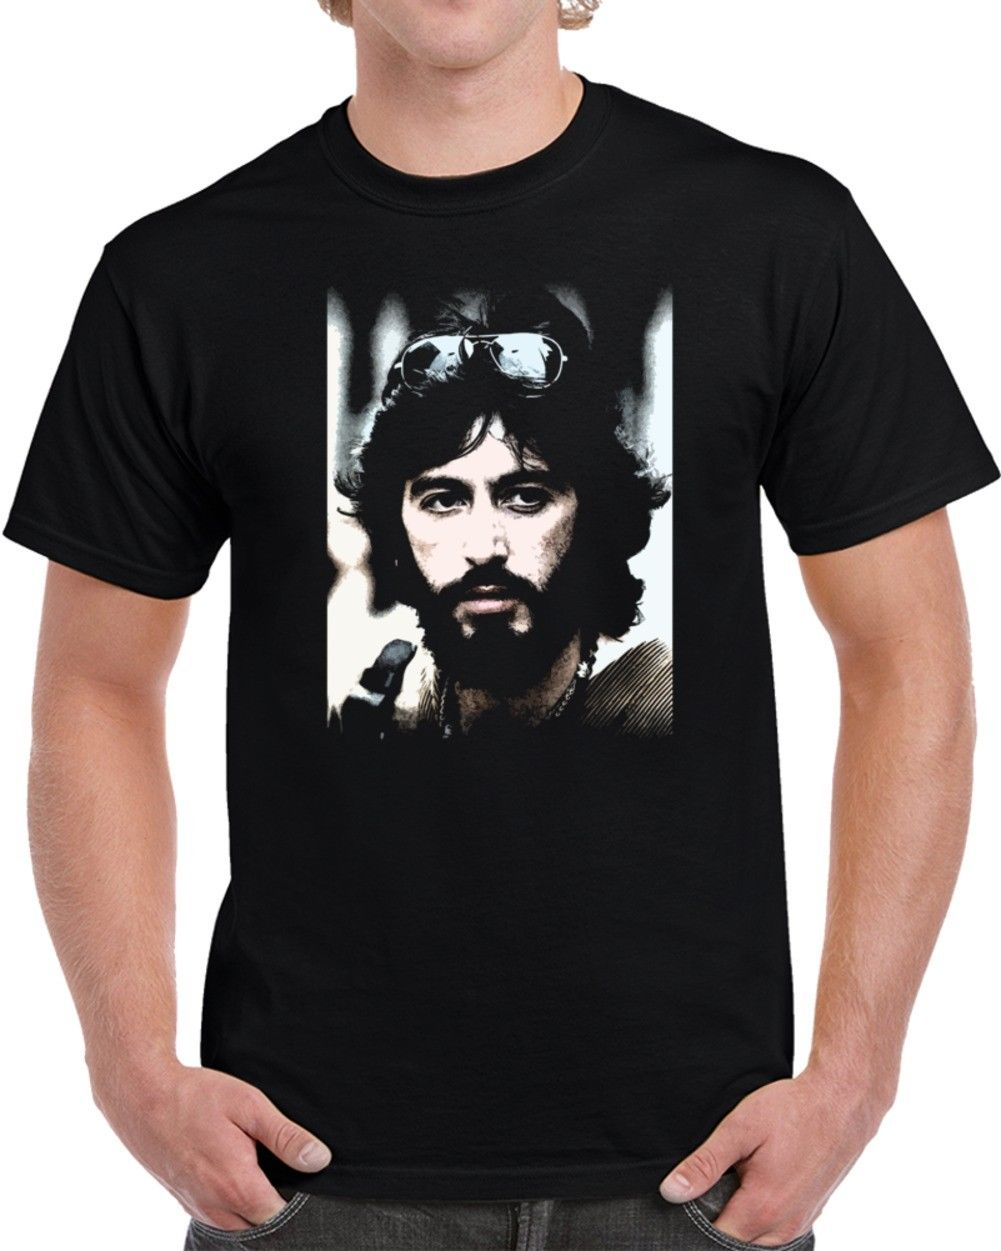 Serpico Al Pacino 70s Cop Cult Movie Fan T Shirt Cool Casual pride t shirt men Unisex New Fashion tshirt free shipping tops image